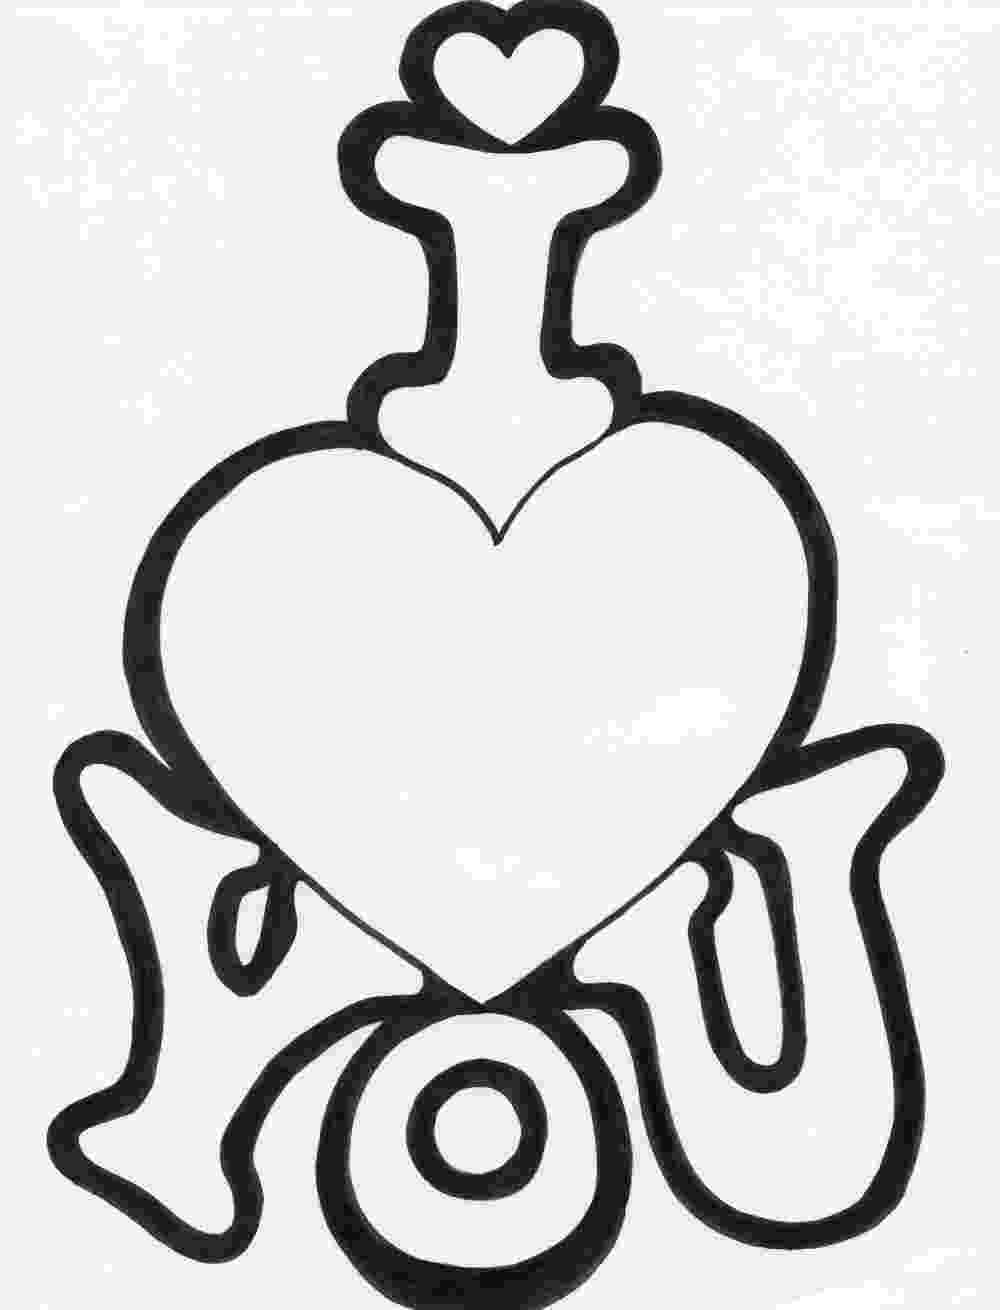 coloring love pictures quoti love you quot coloring pages coloring love pictures